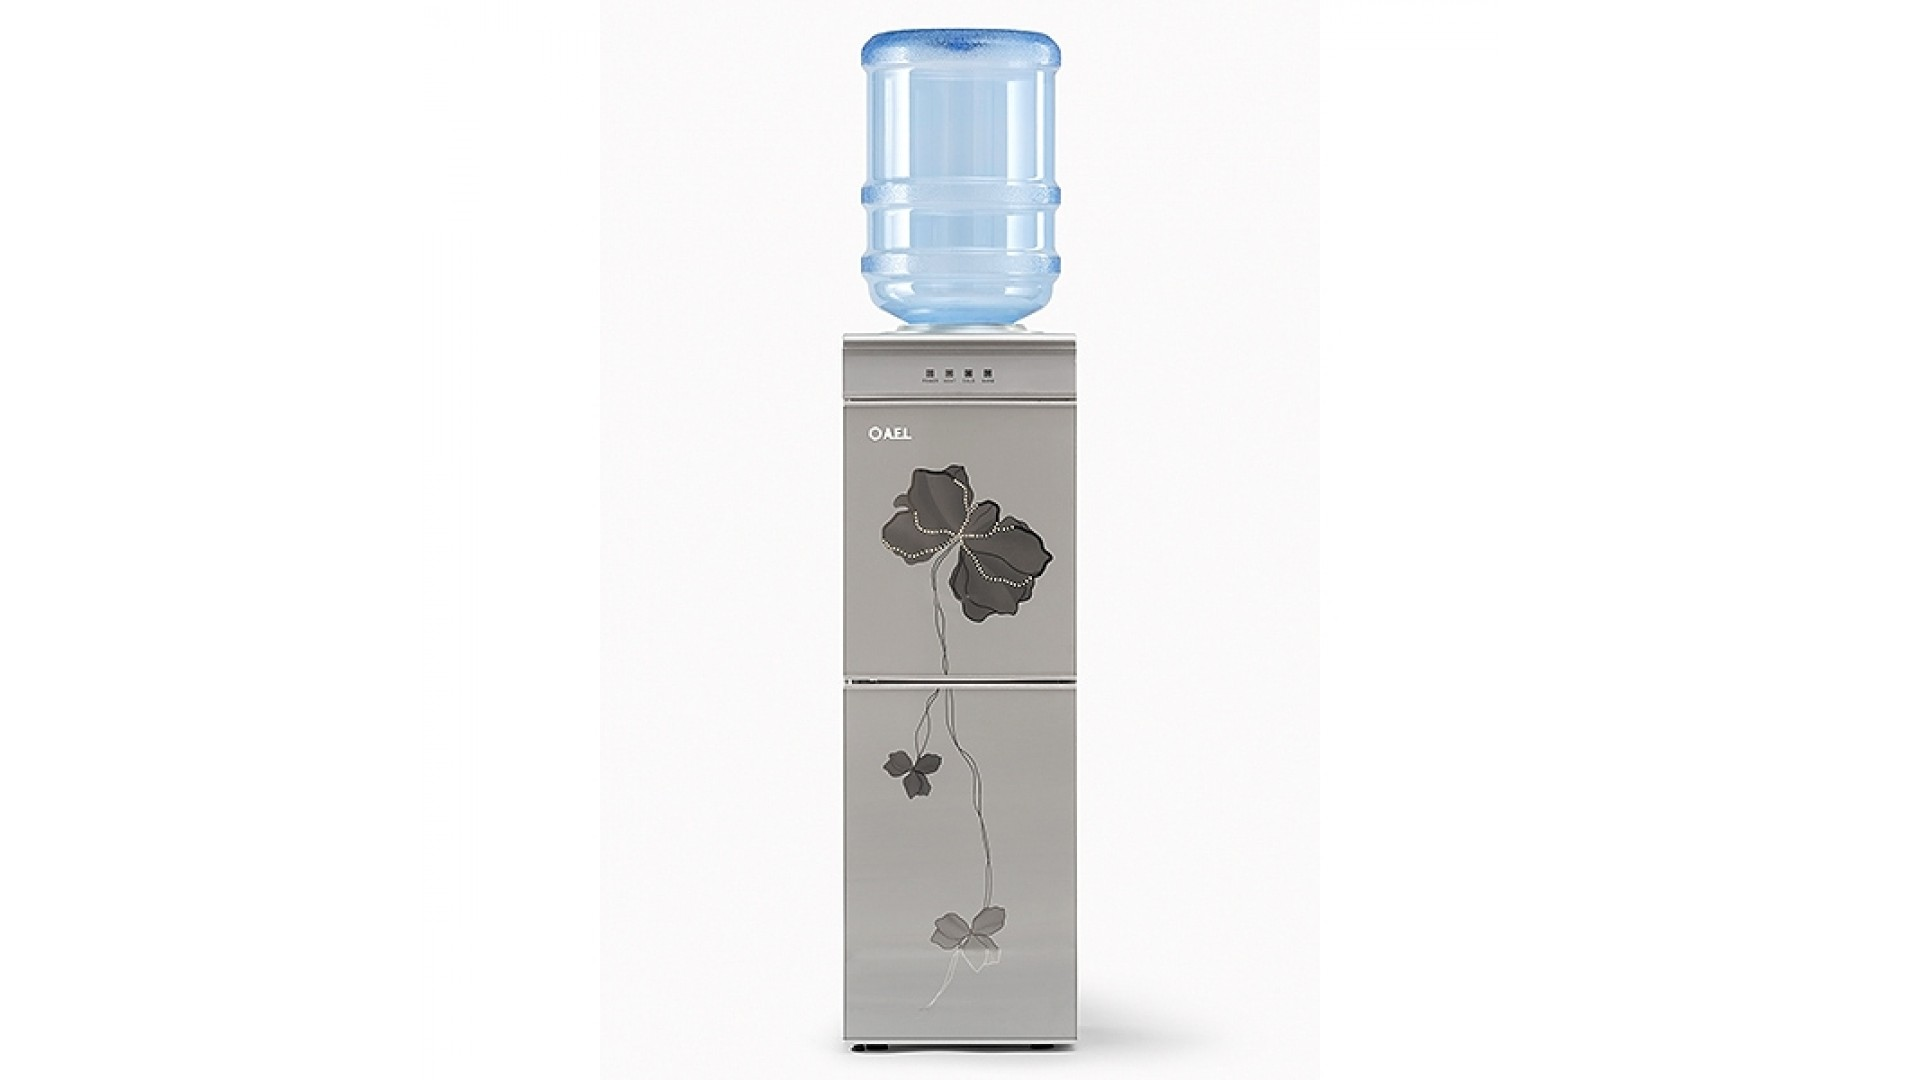 water-dispenser-lc-ael-601b